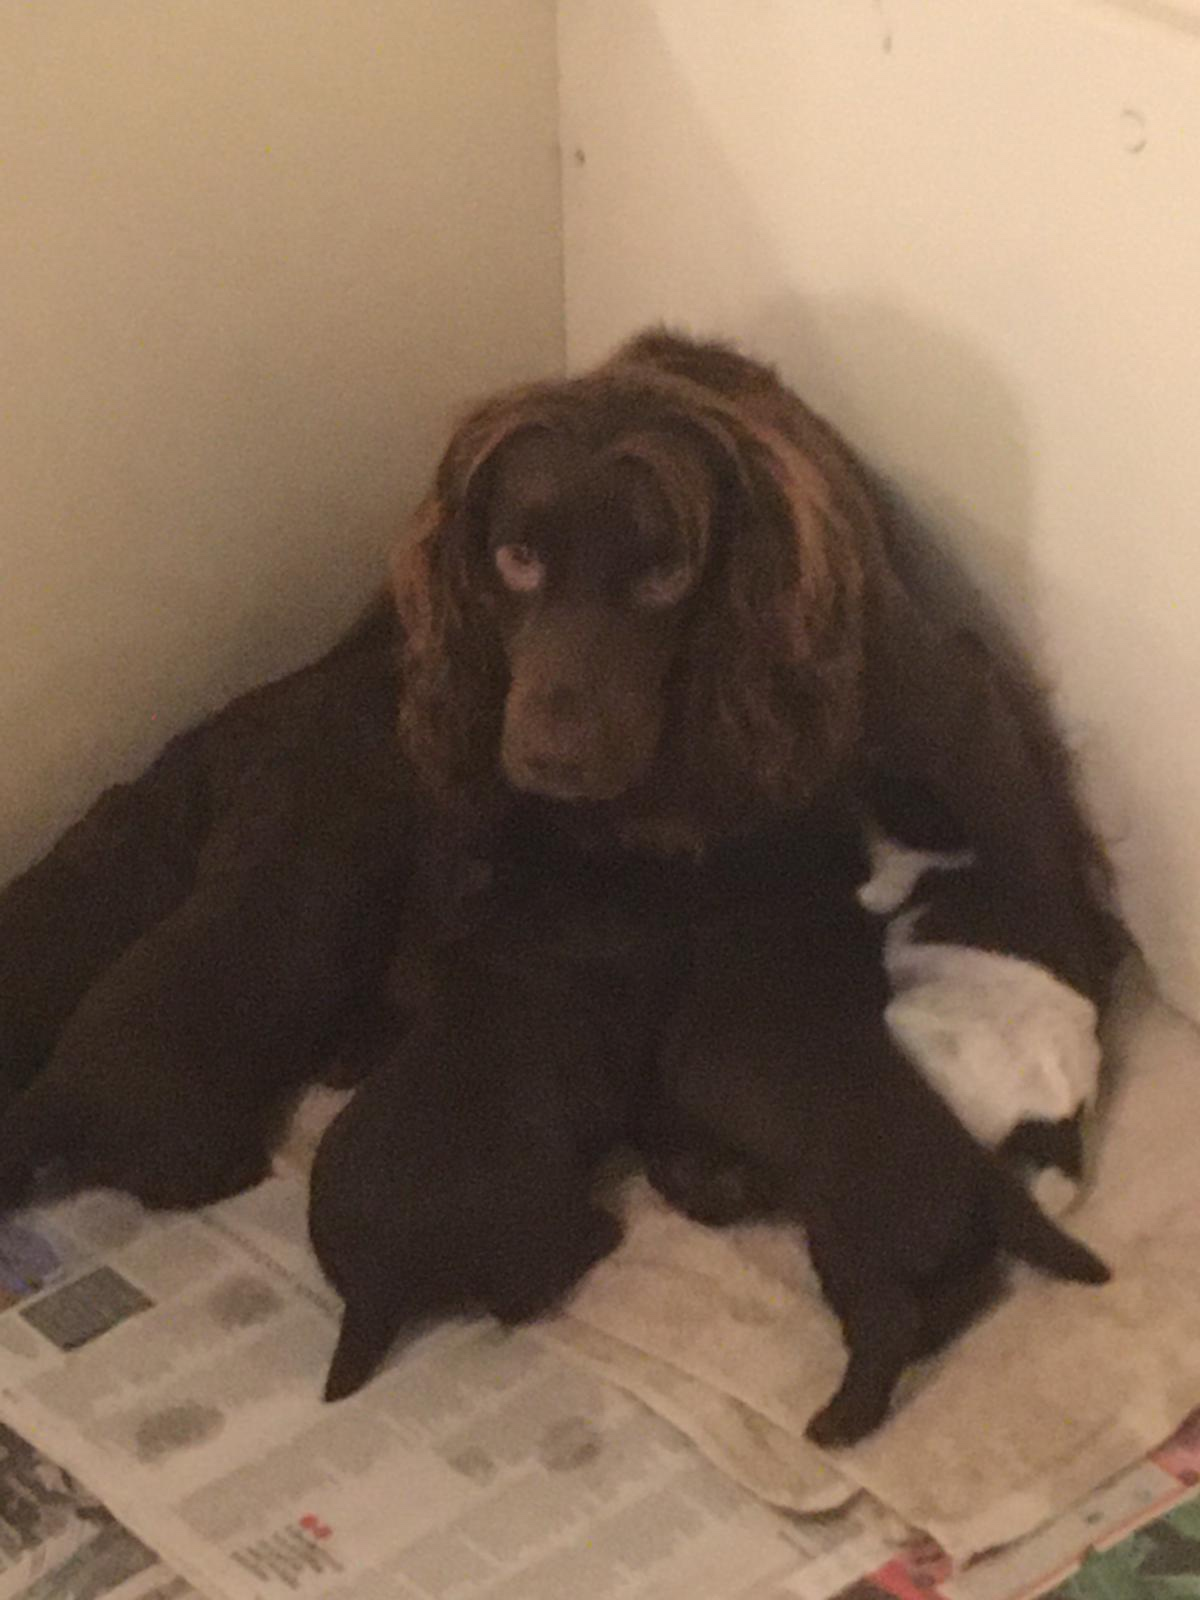 A cocker spaniel and her puppies.